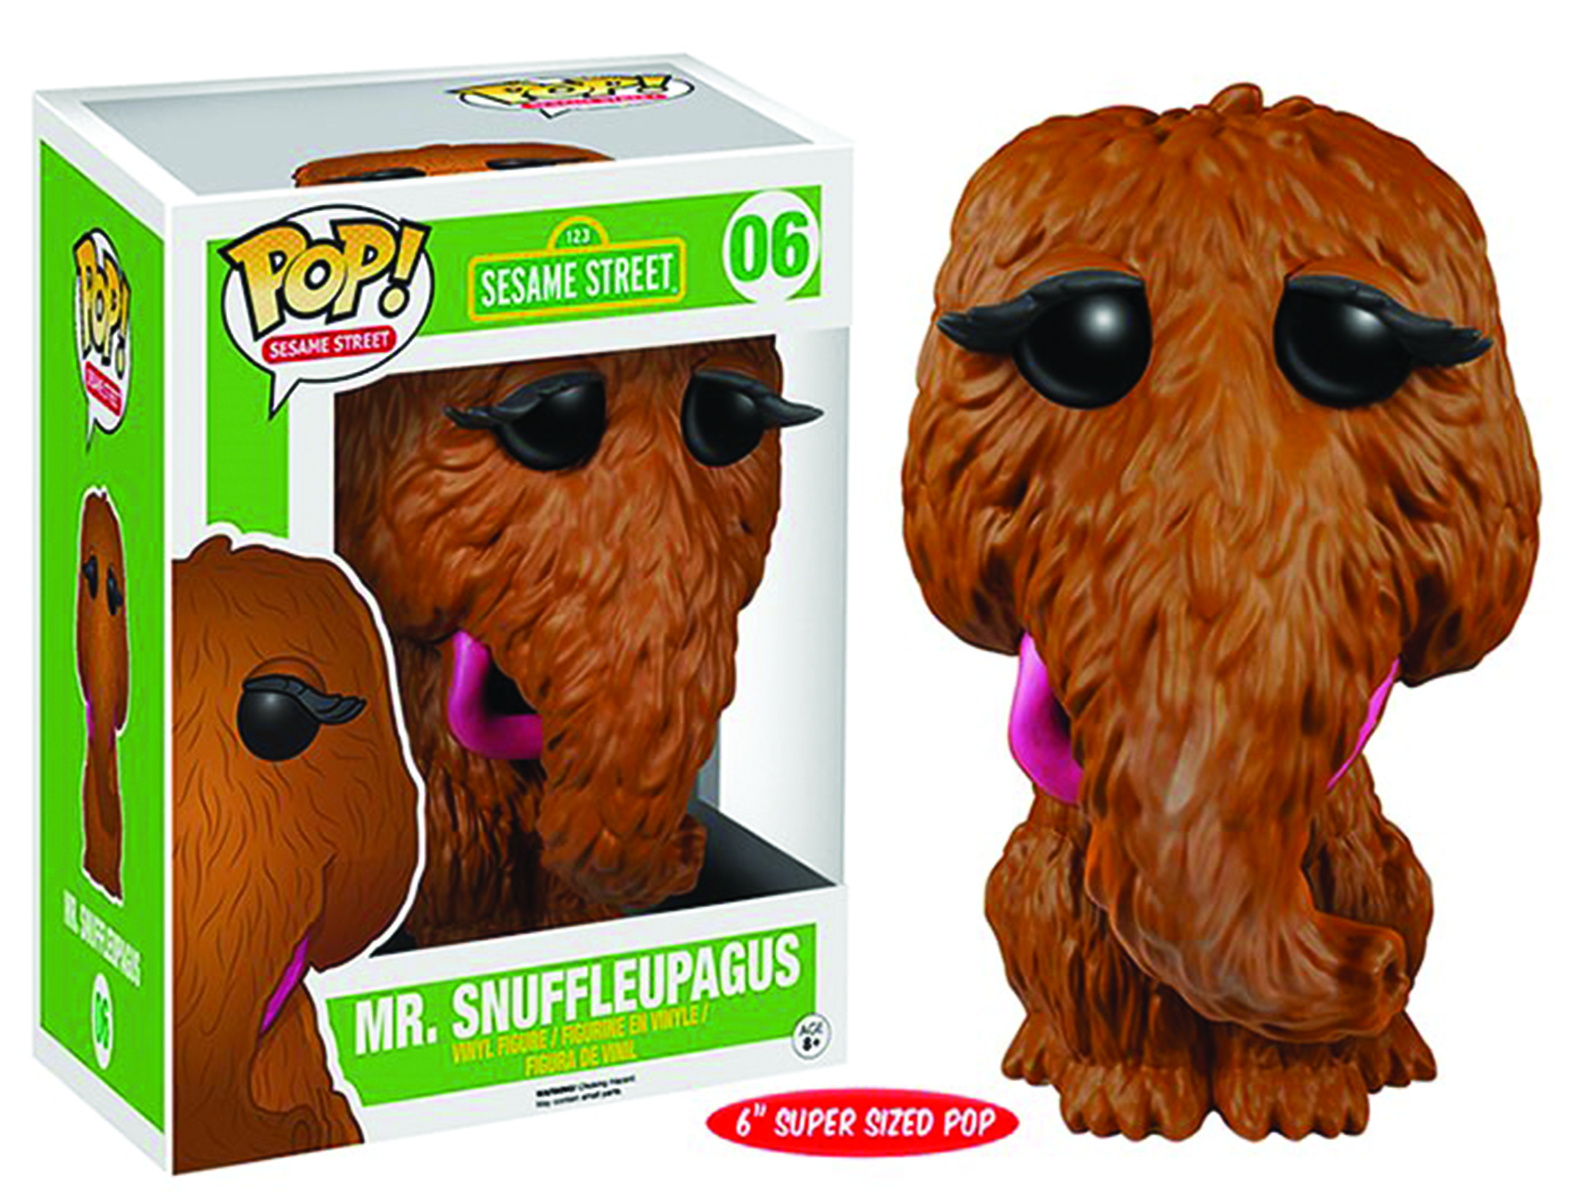 POP SESAME STREET SNUFFLEUPAGUS 6IN VINYL FIG